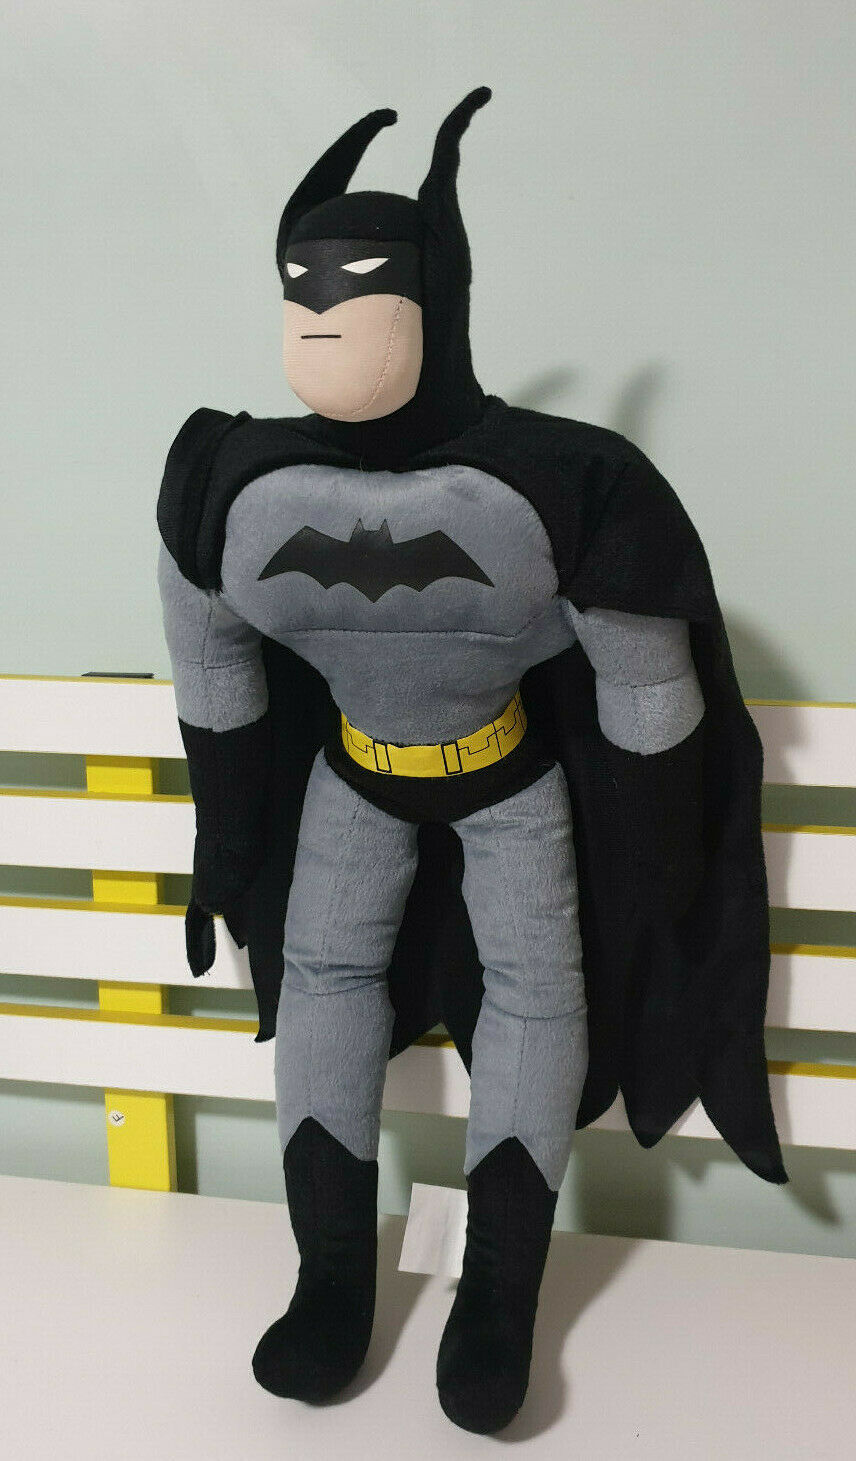 BATMAN PLUSH TOY 65CM CHARACTER TOY DC COMICS WOOLWORTHS RELEASE